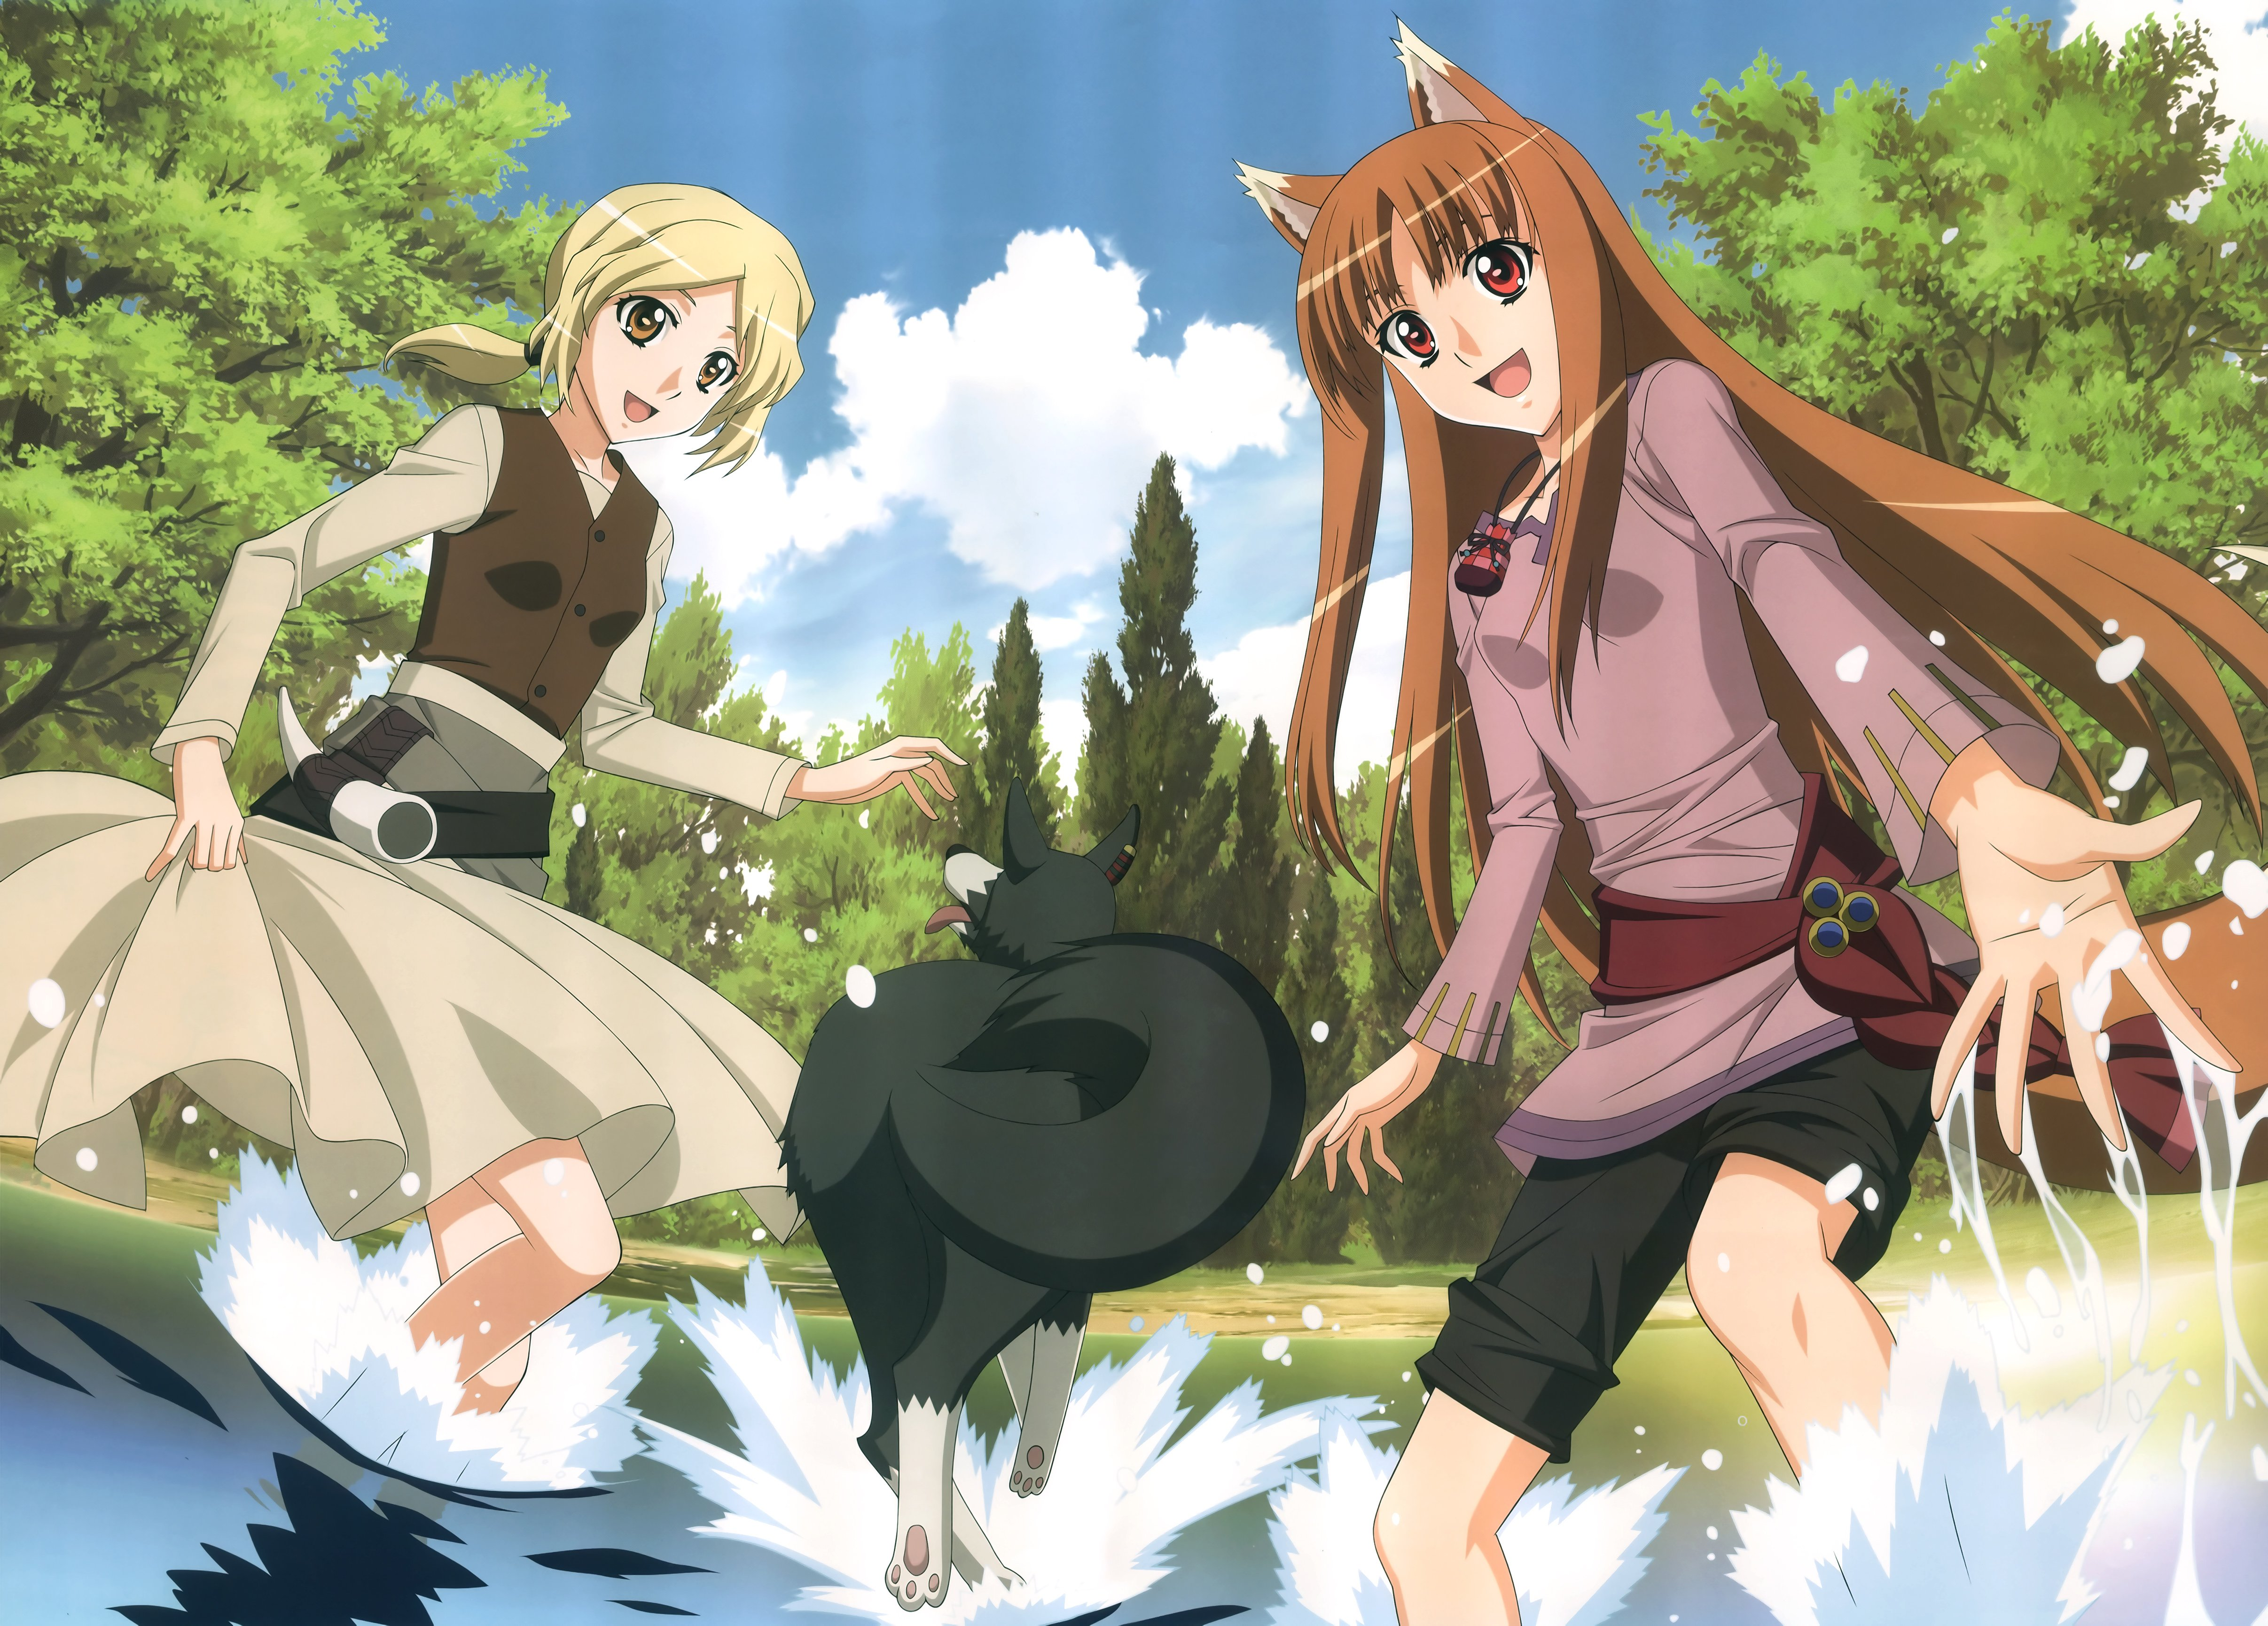 Spice And Wolf Wallpapers Anime Hq Spice And Wolf Pictures 4k